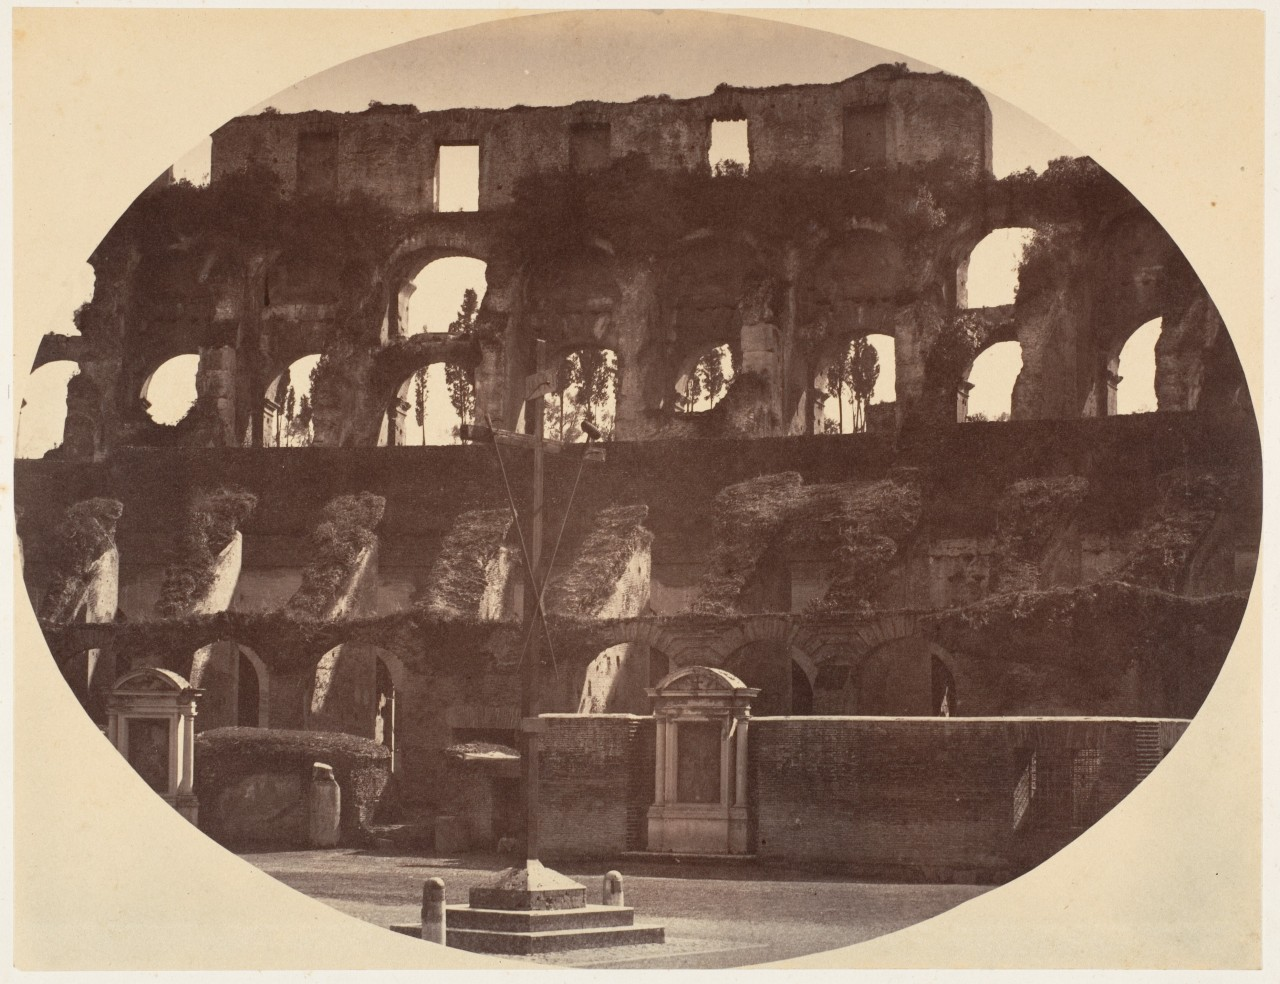 didoofcarthage: